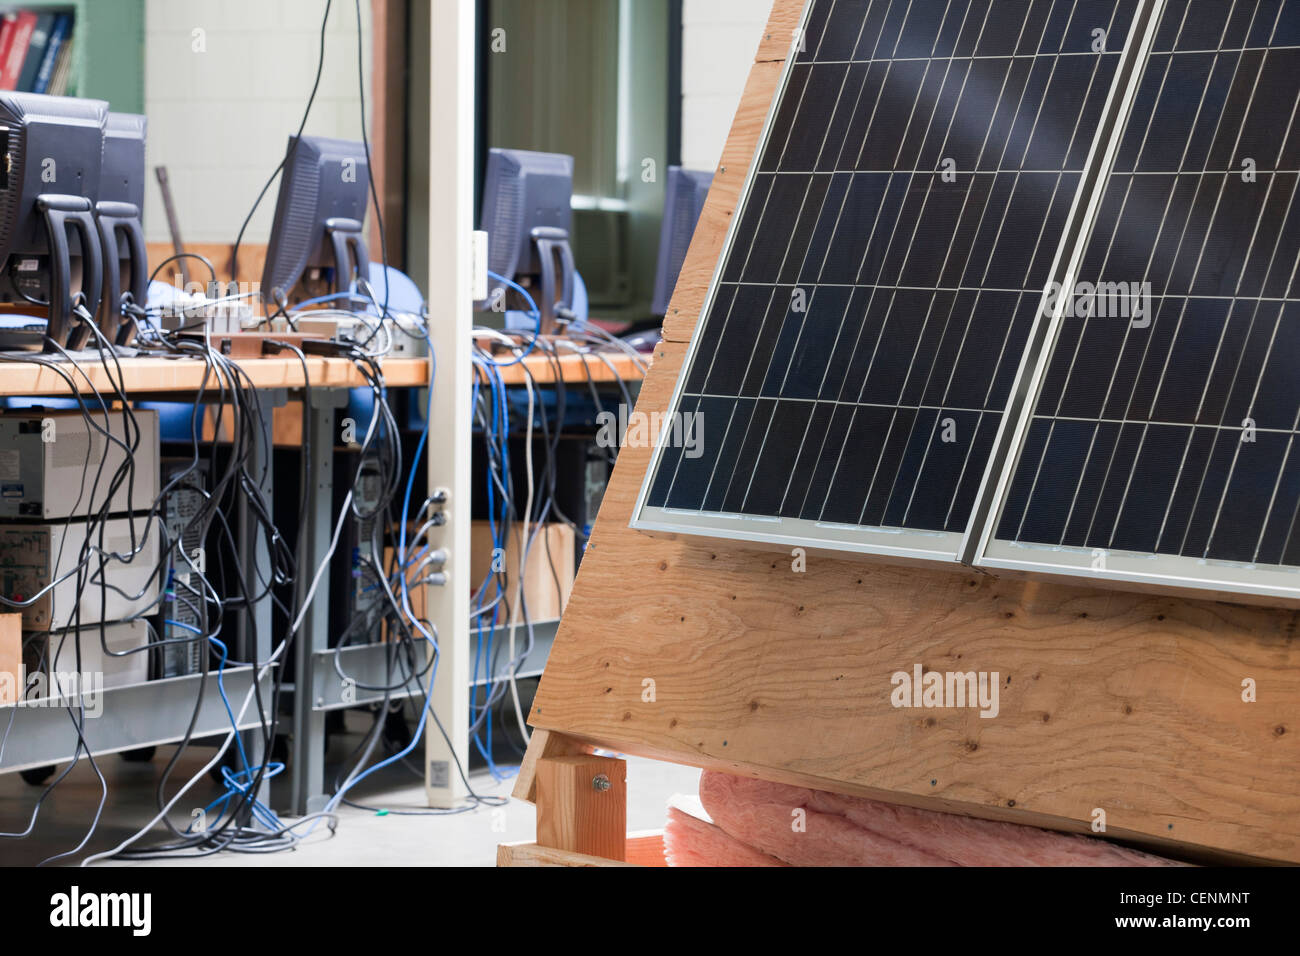 College engineering lab featuring computers and Photovoltaic panels for demonstration - Stock Image